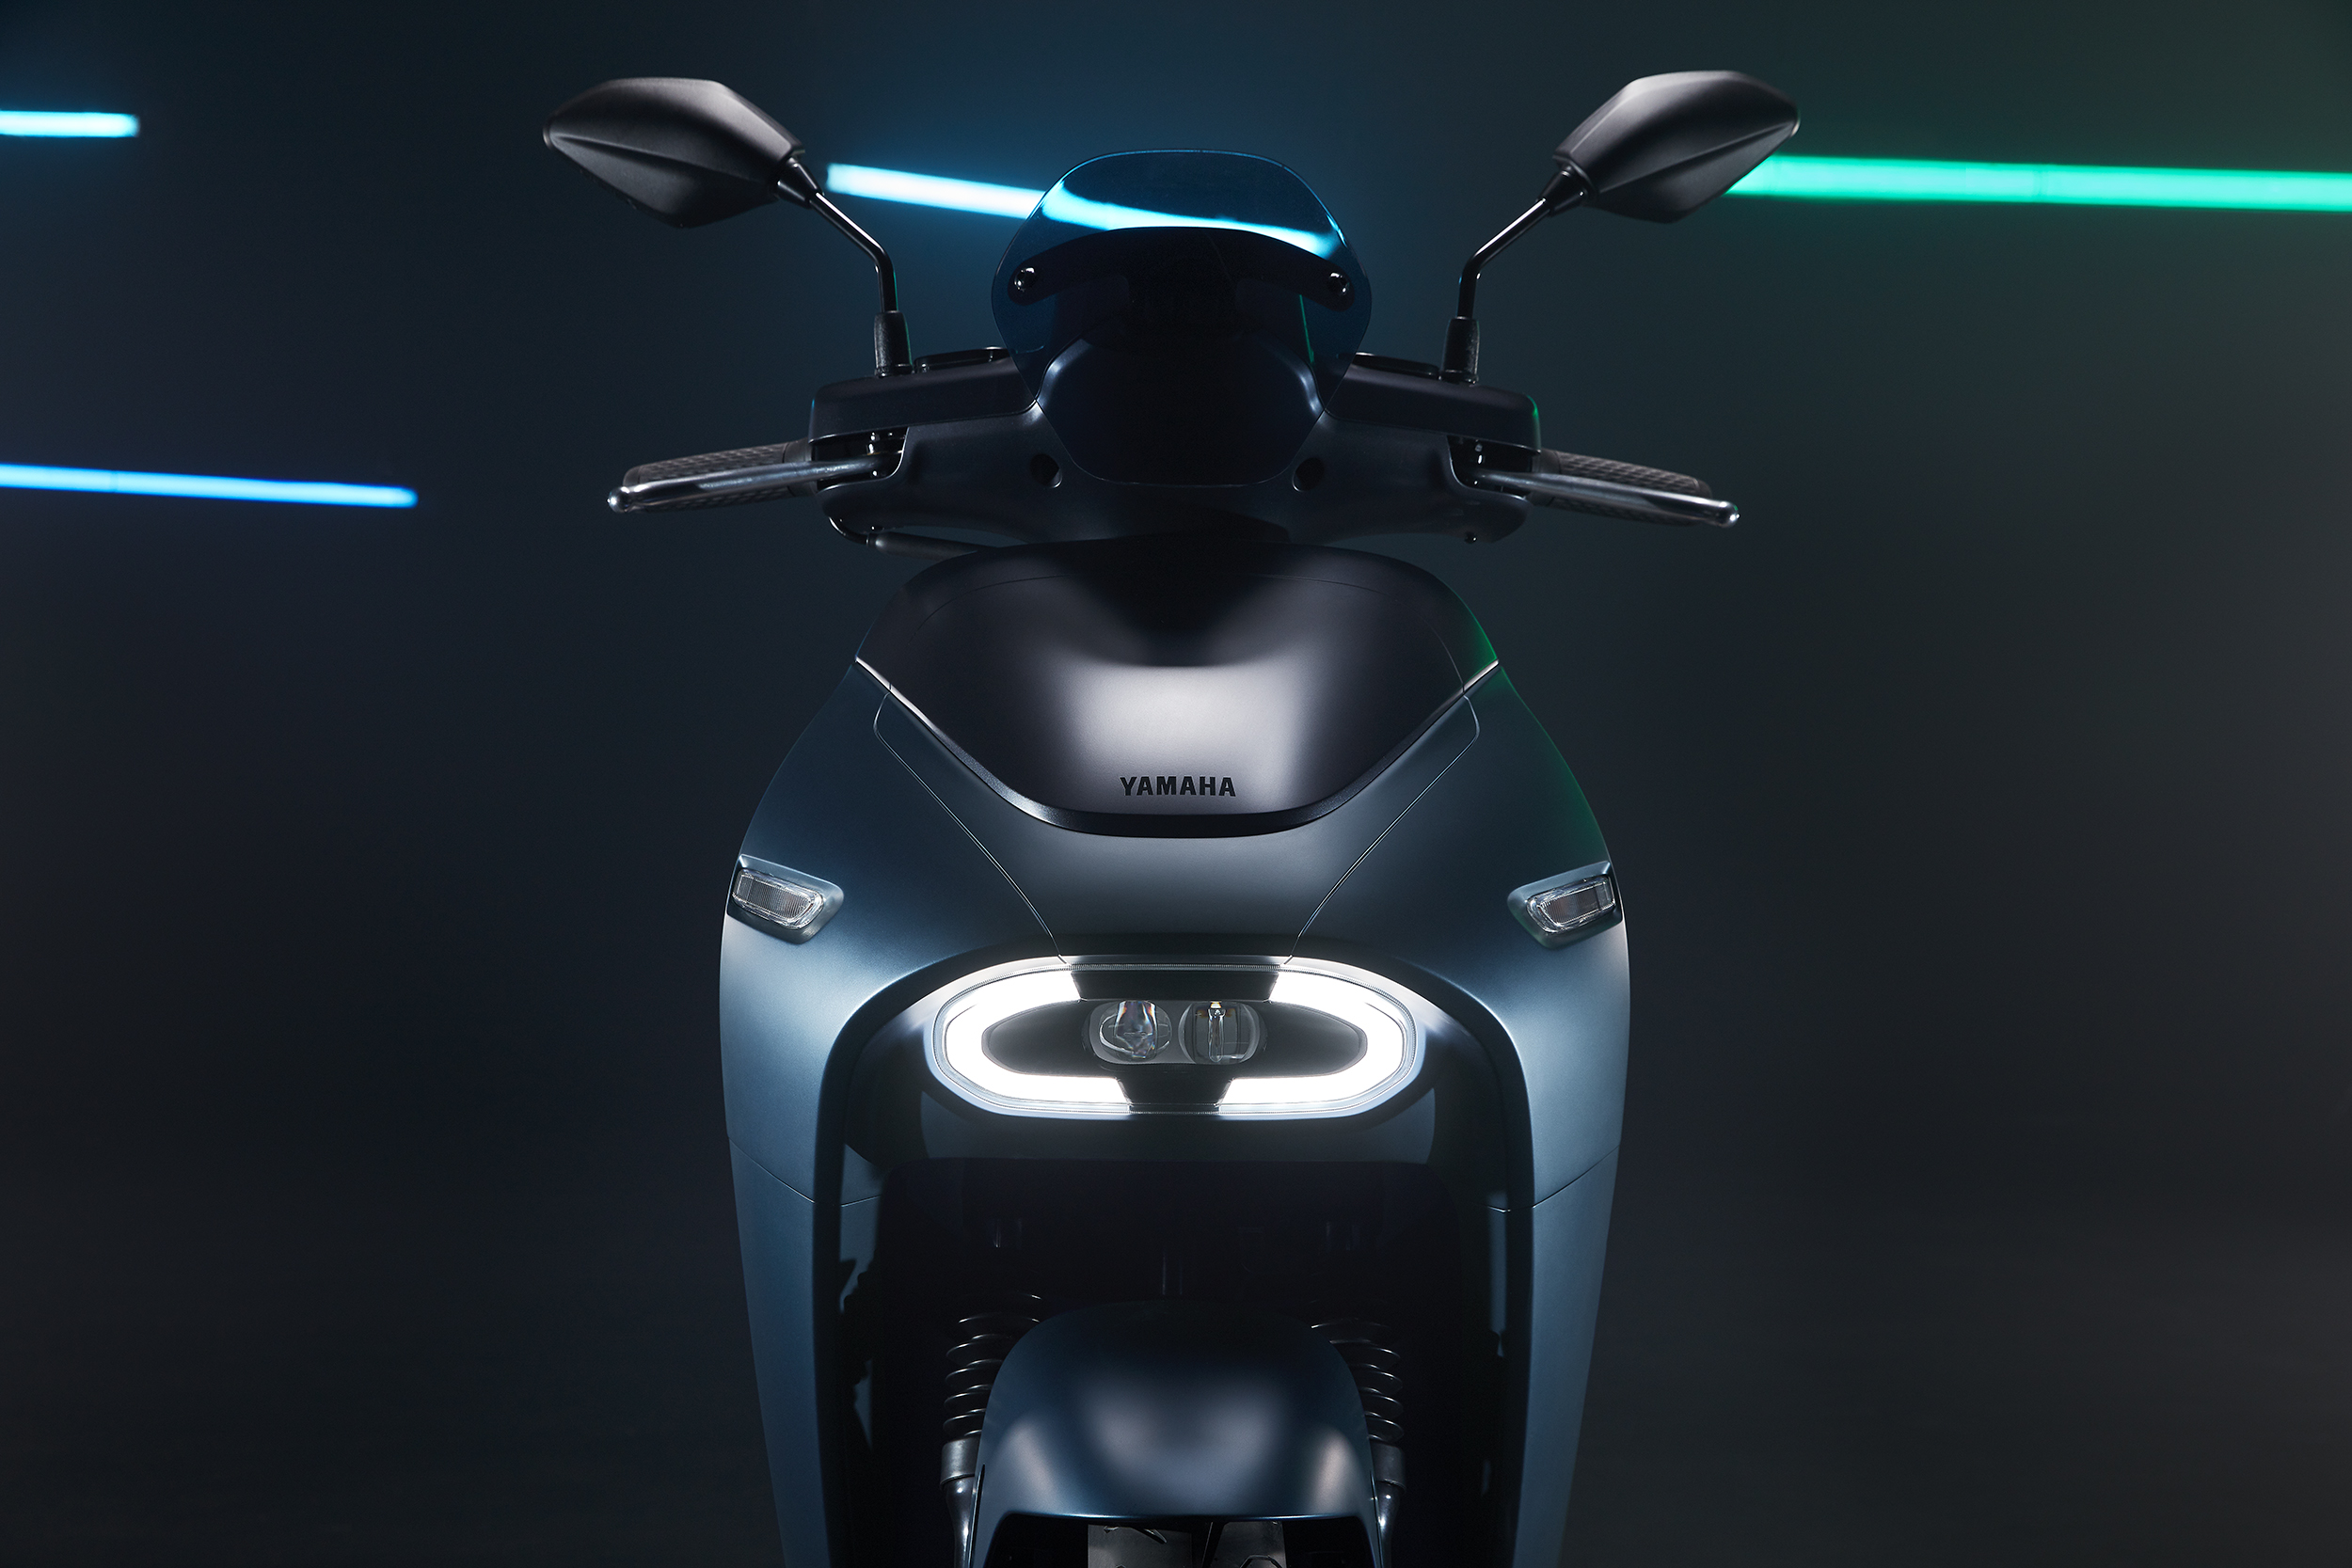 New YAMAHA EC-05 electric scooter with Gogoro battery sharing